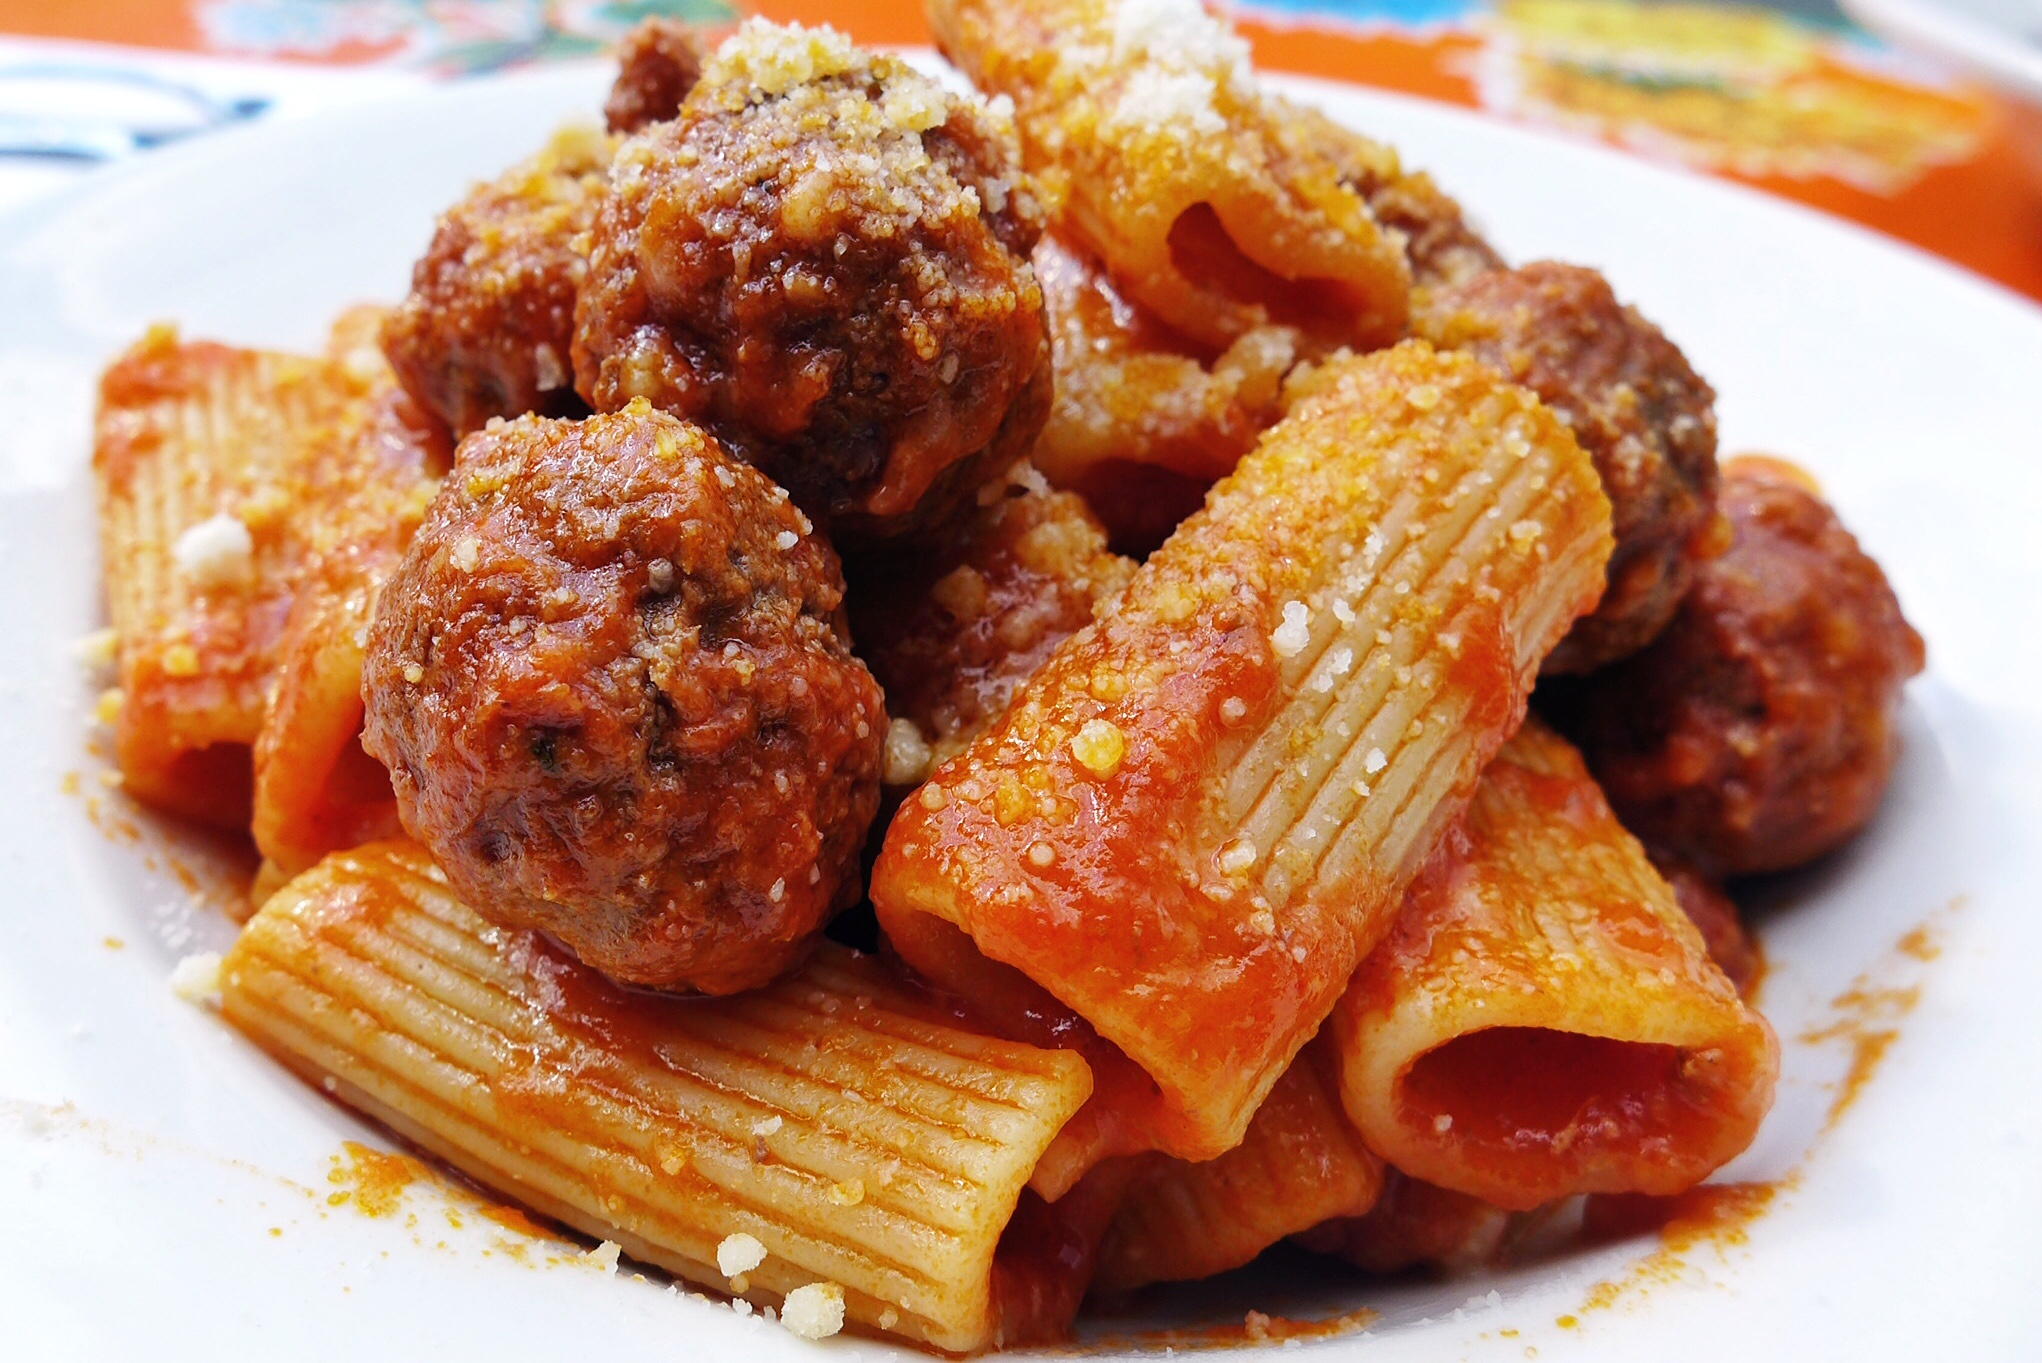 Rigatoni in Frank's Grandmother's Ragu